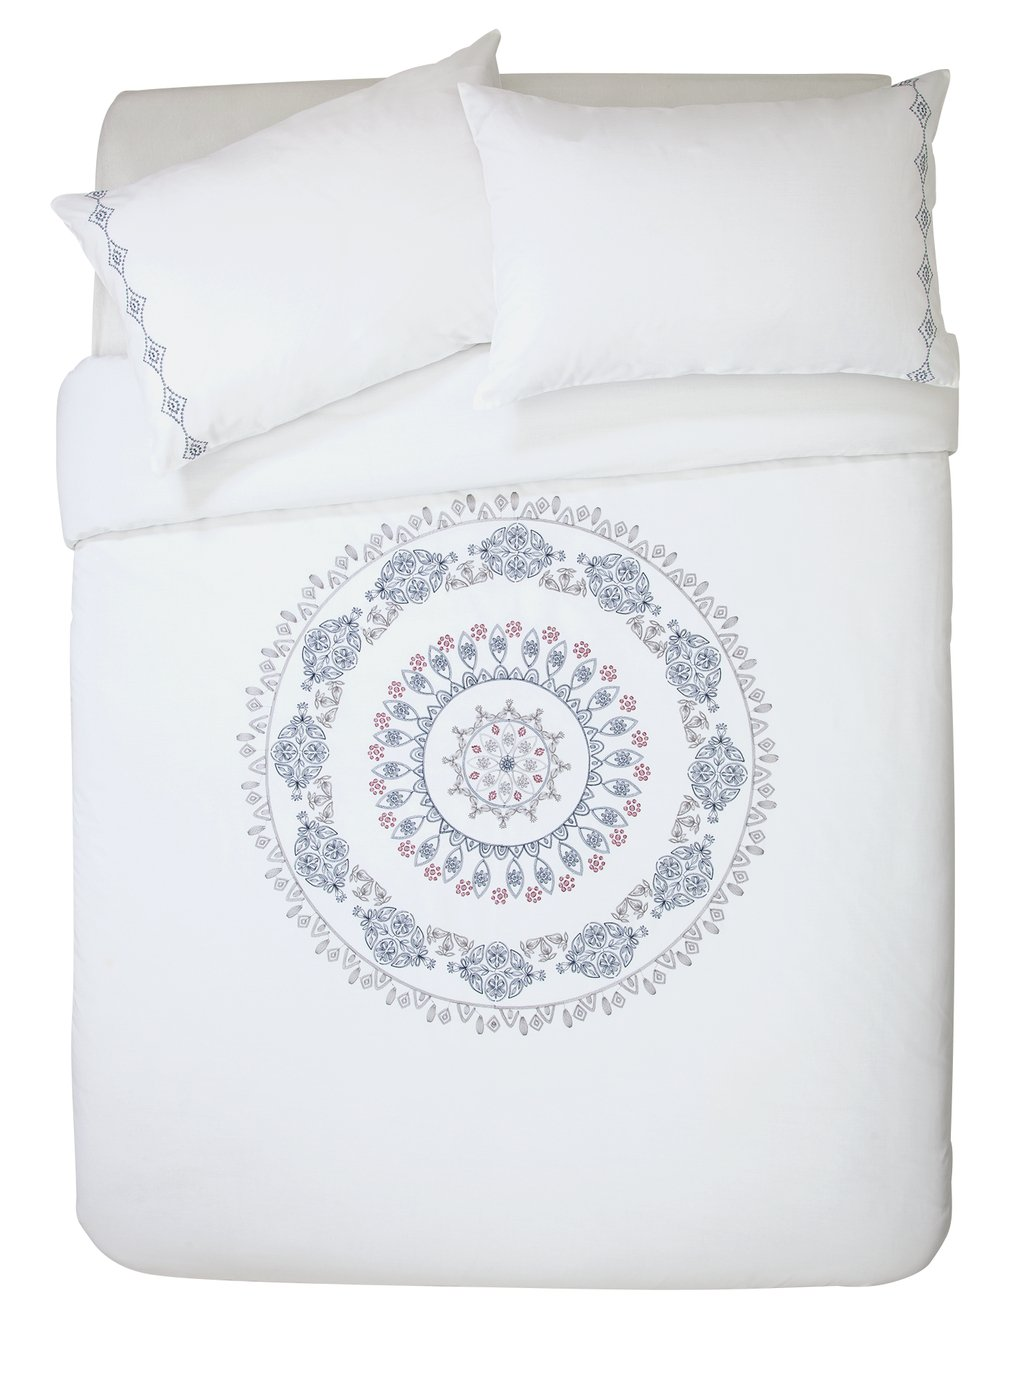 Argos Home Medallion Embroidered Bedding Set - Kingsize